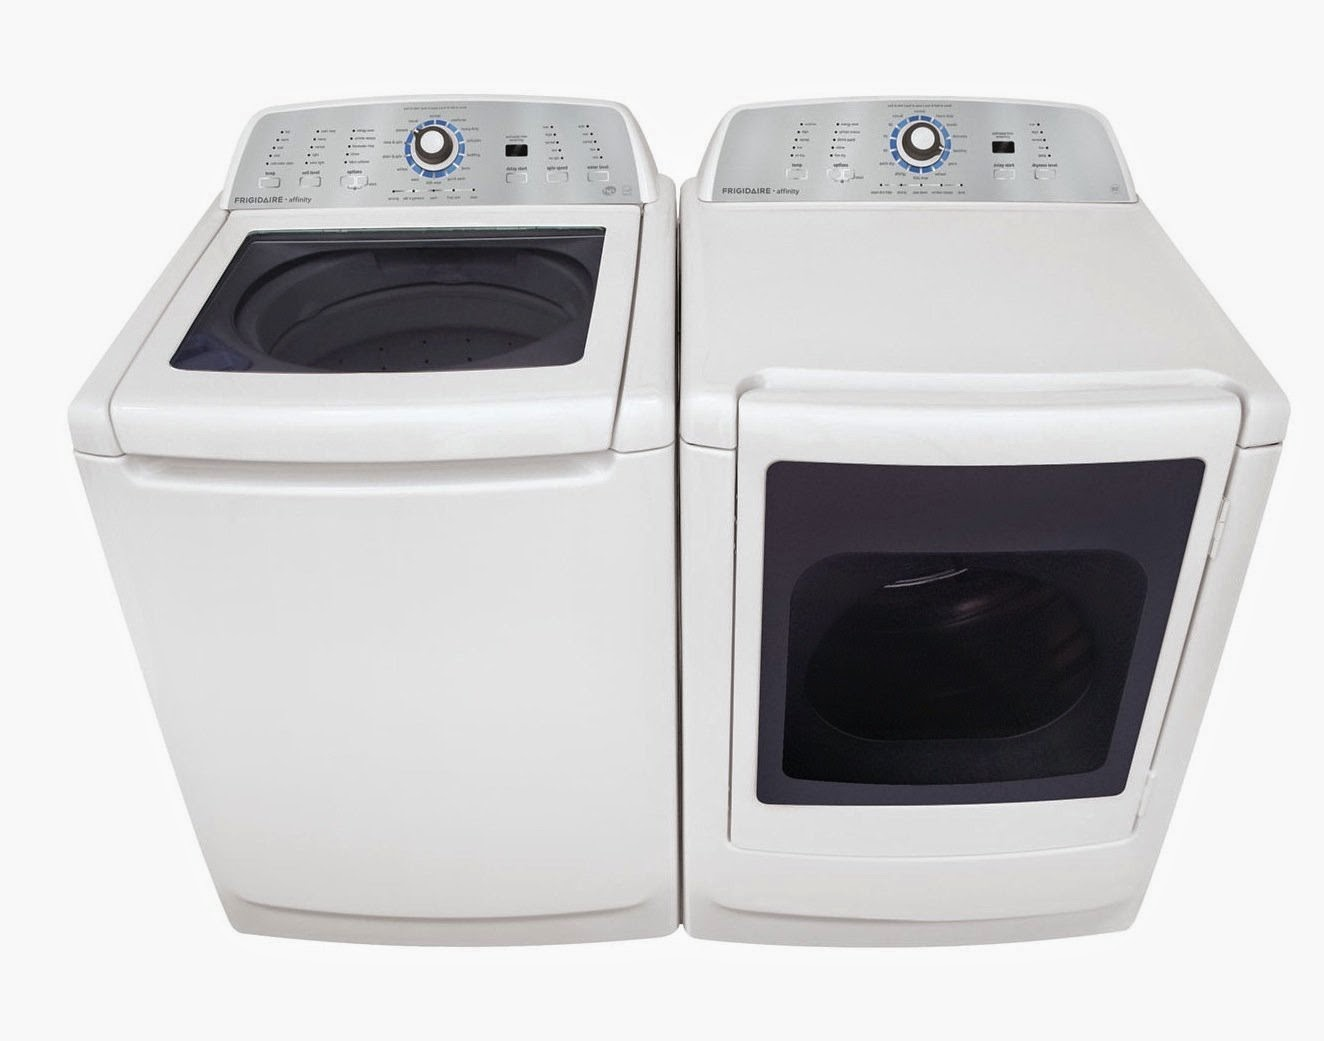 The best top load washer on the market - Frigidaire Top Load Washers